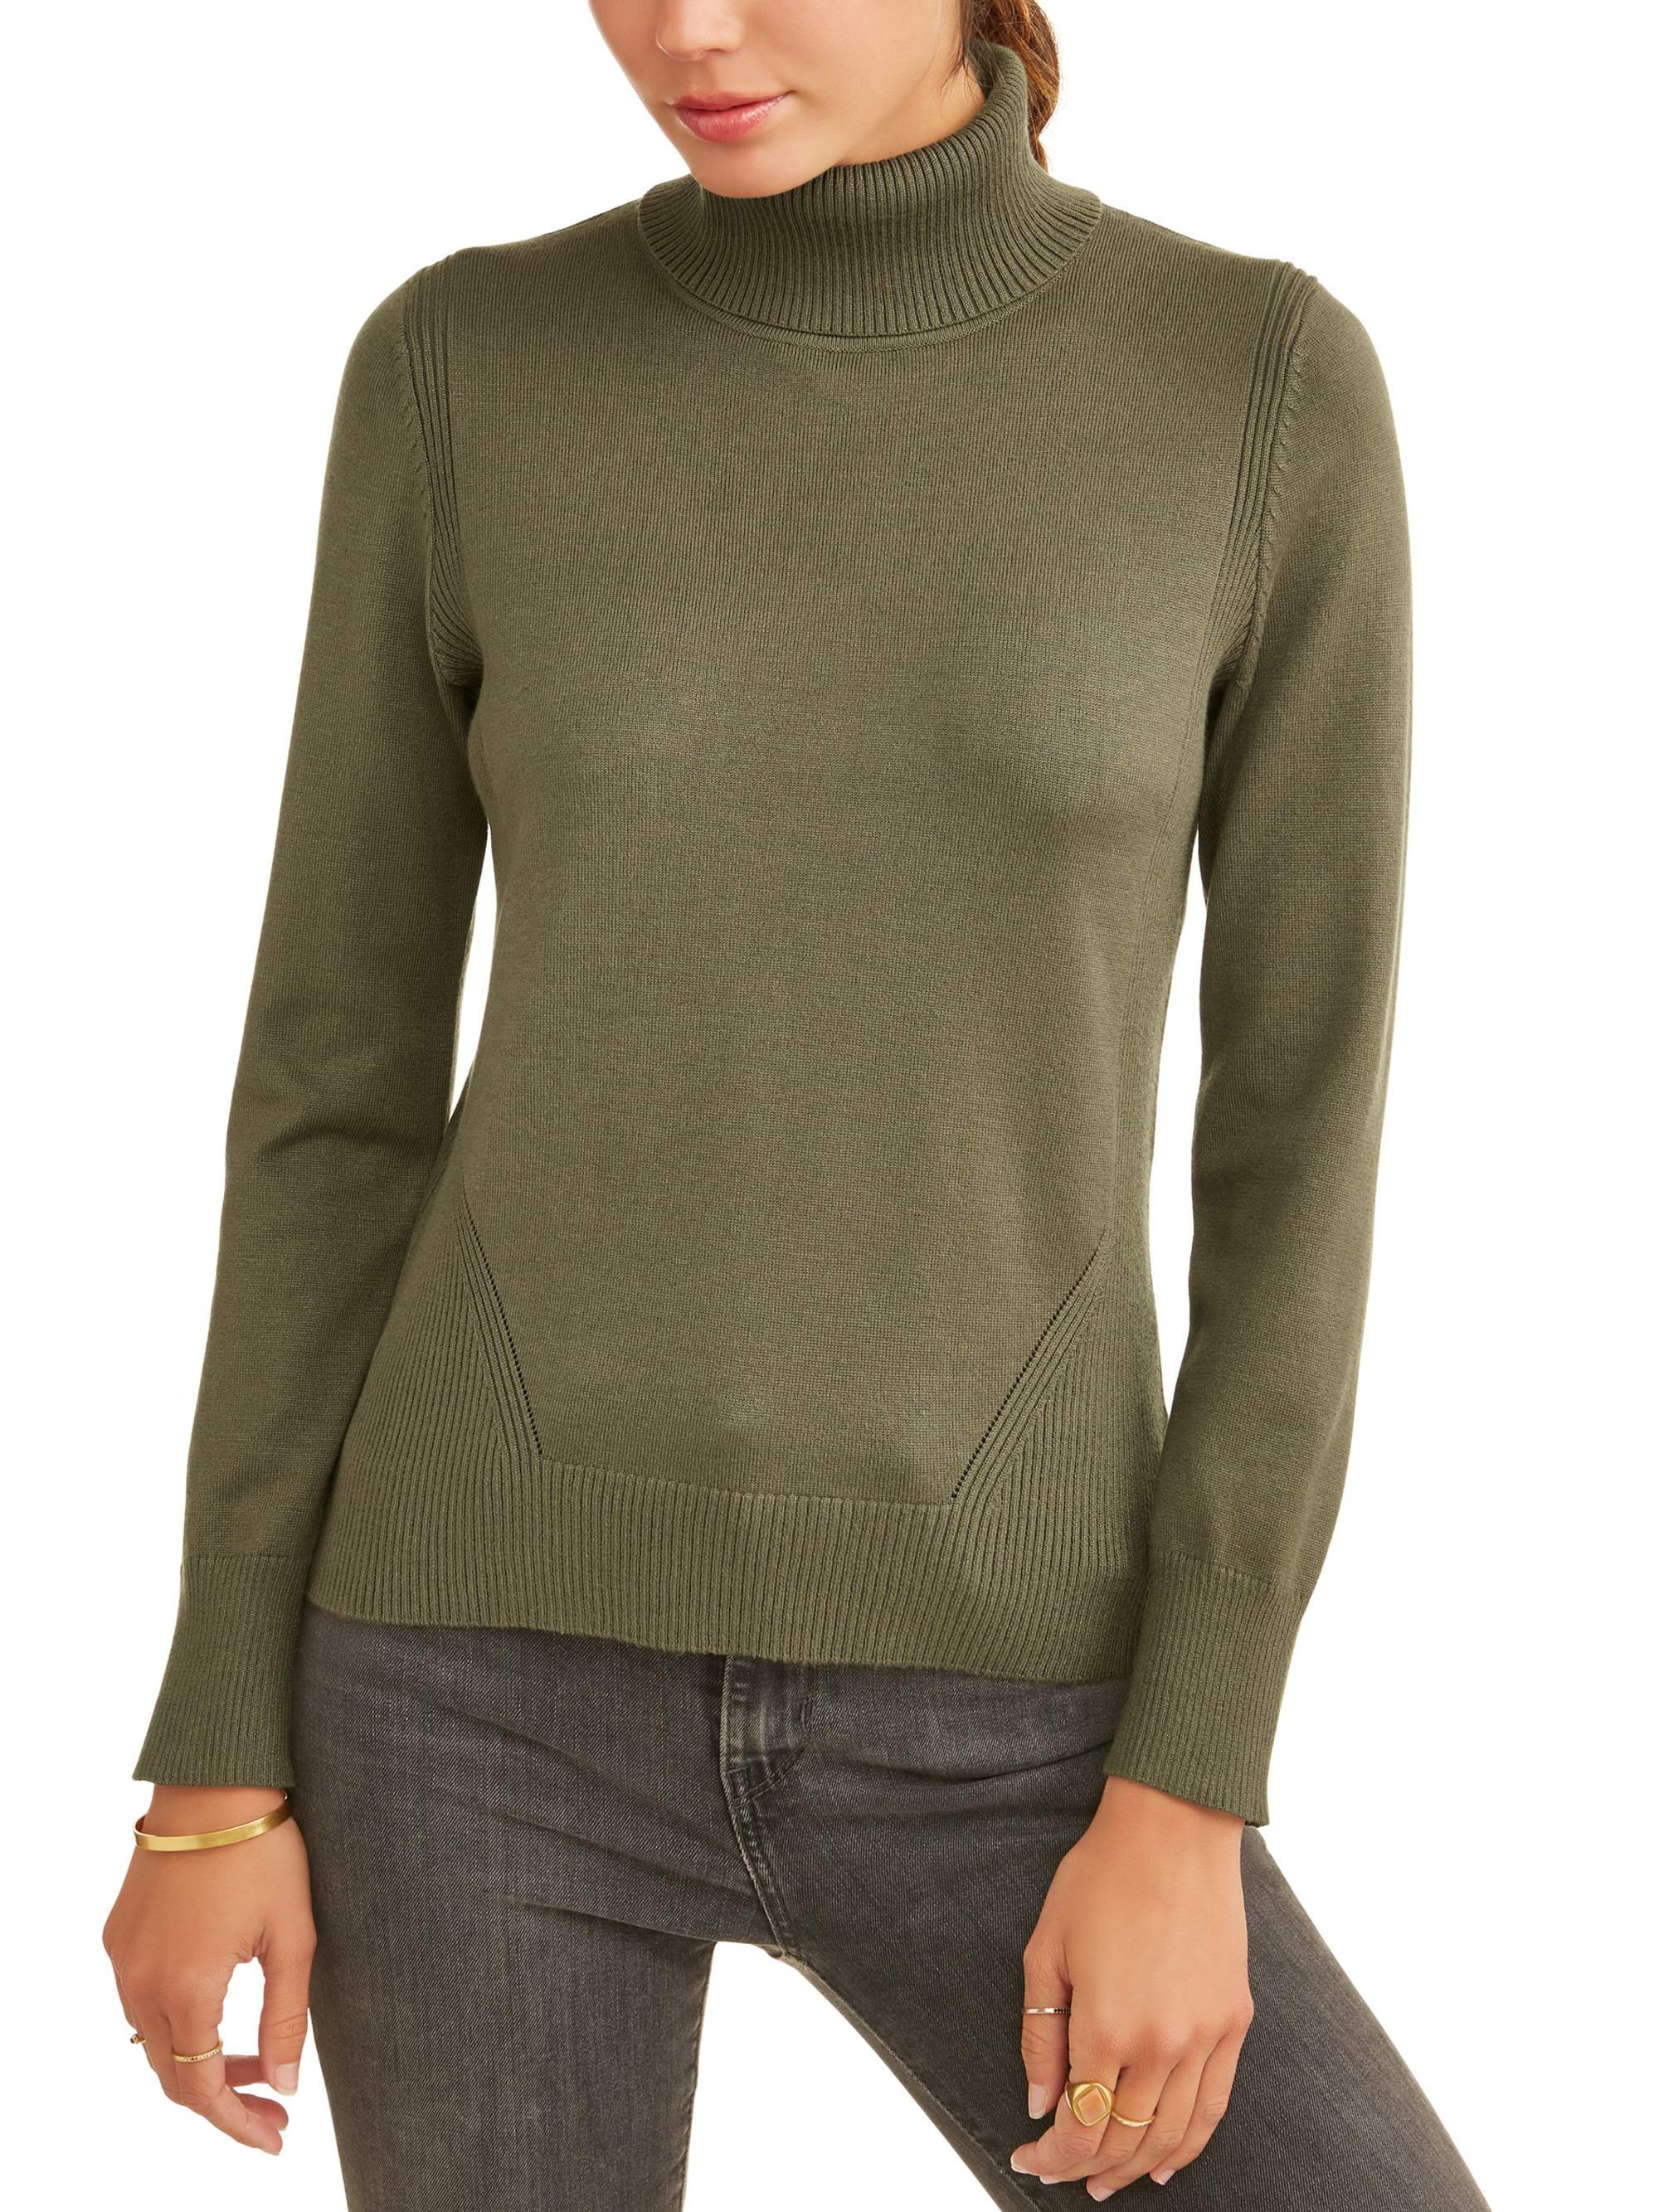 Women's Relaxed Fit Turtleneck